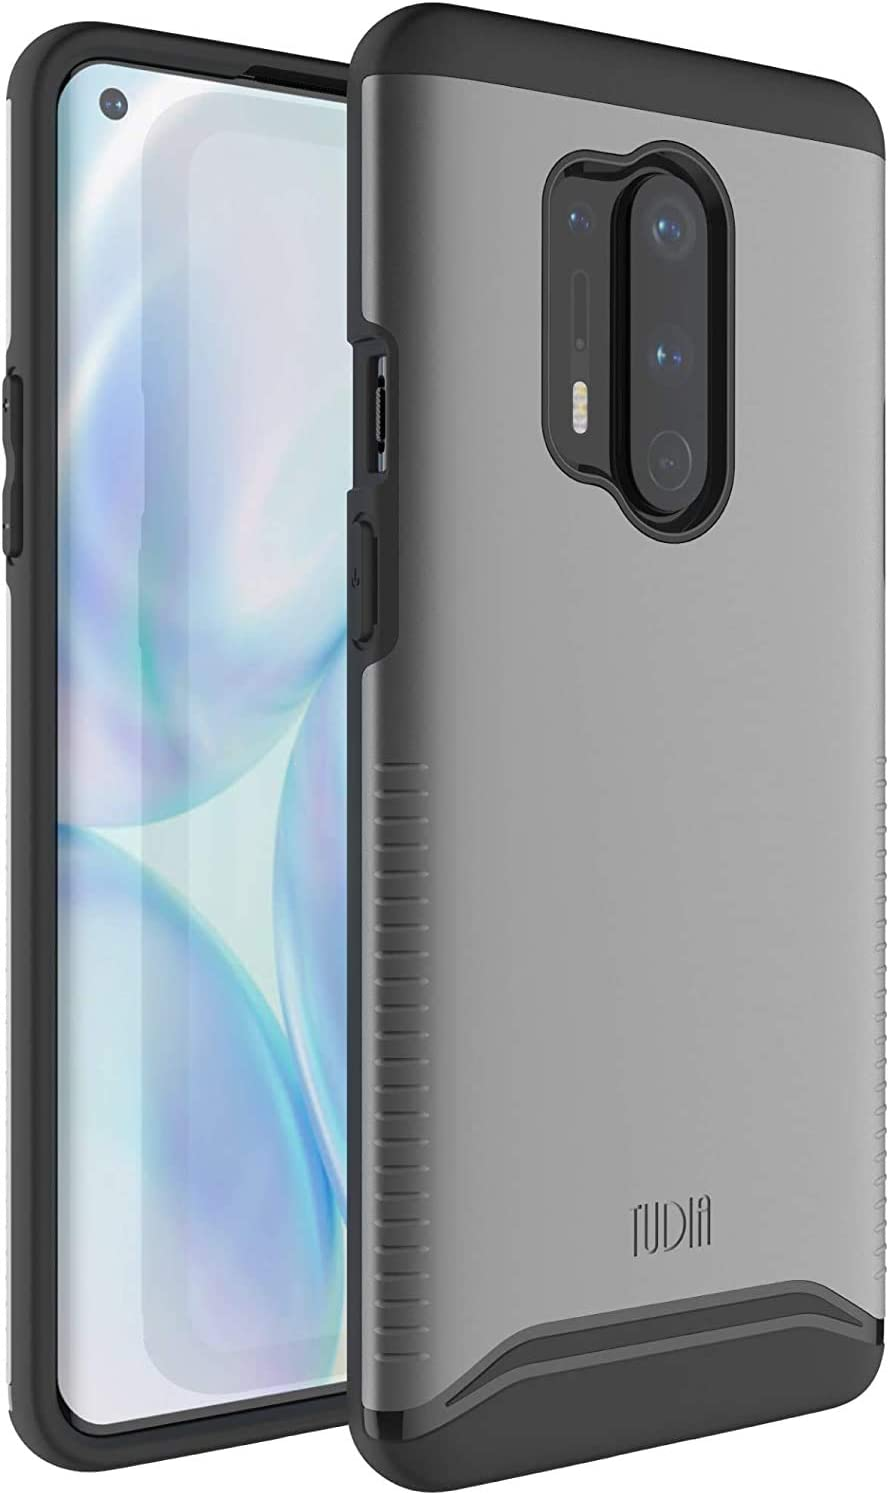 TUDIA Merge Designed for OnePlus 8 Pro Case, Dual Layer Phone Case Cover for OnePlus 8 Pro (Metallic Slate)